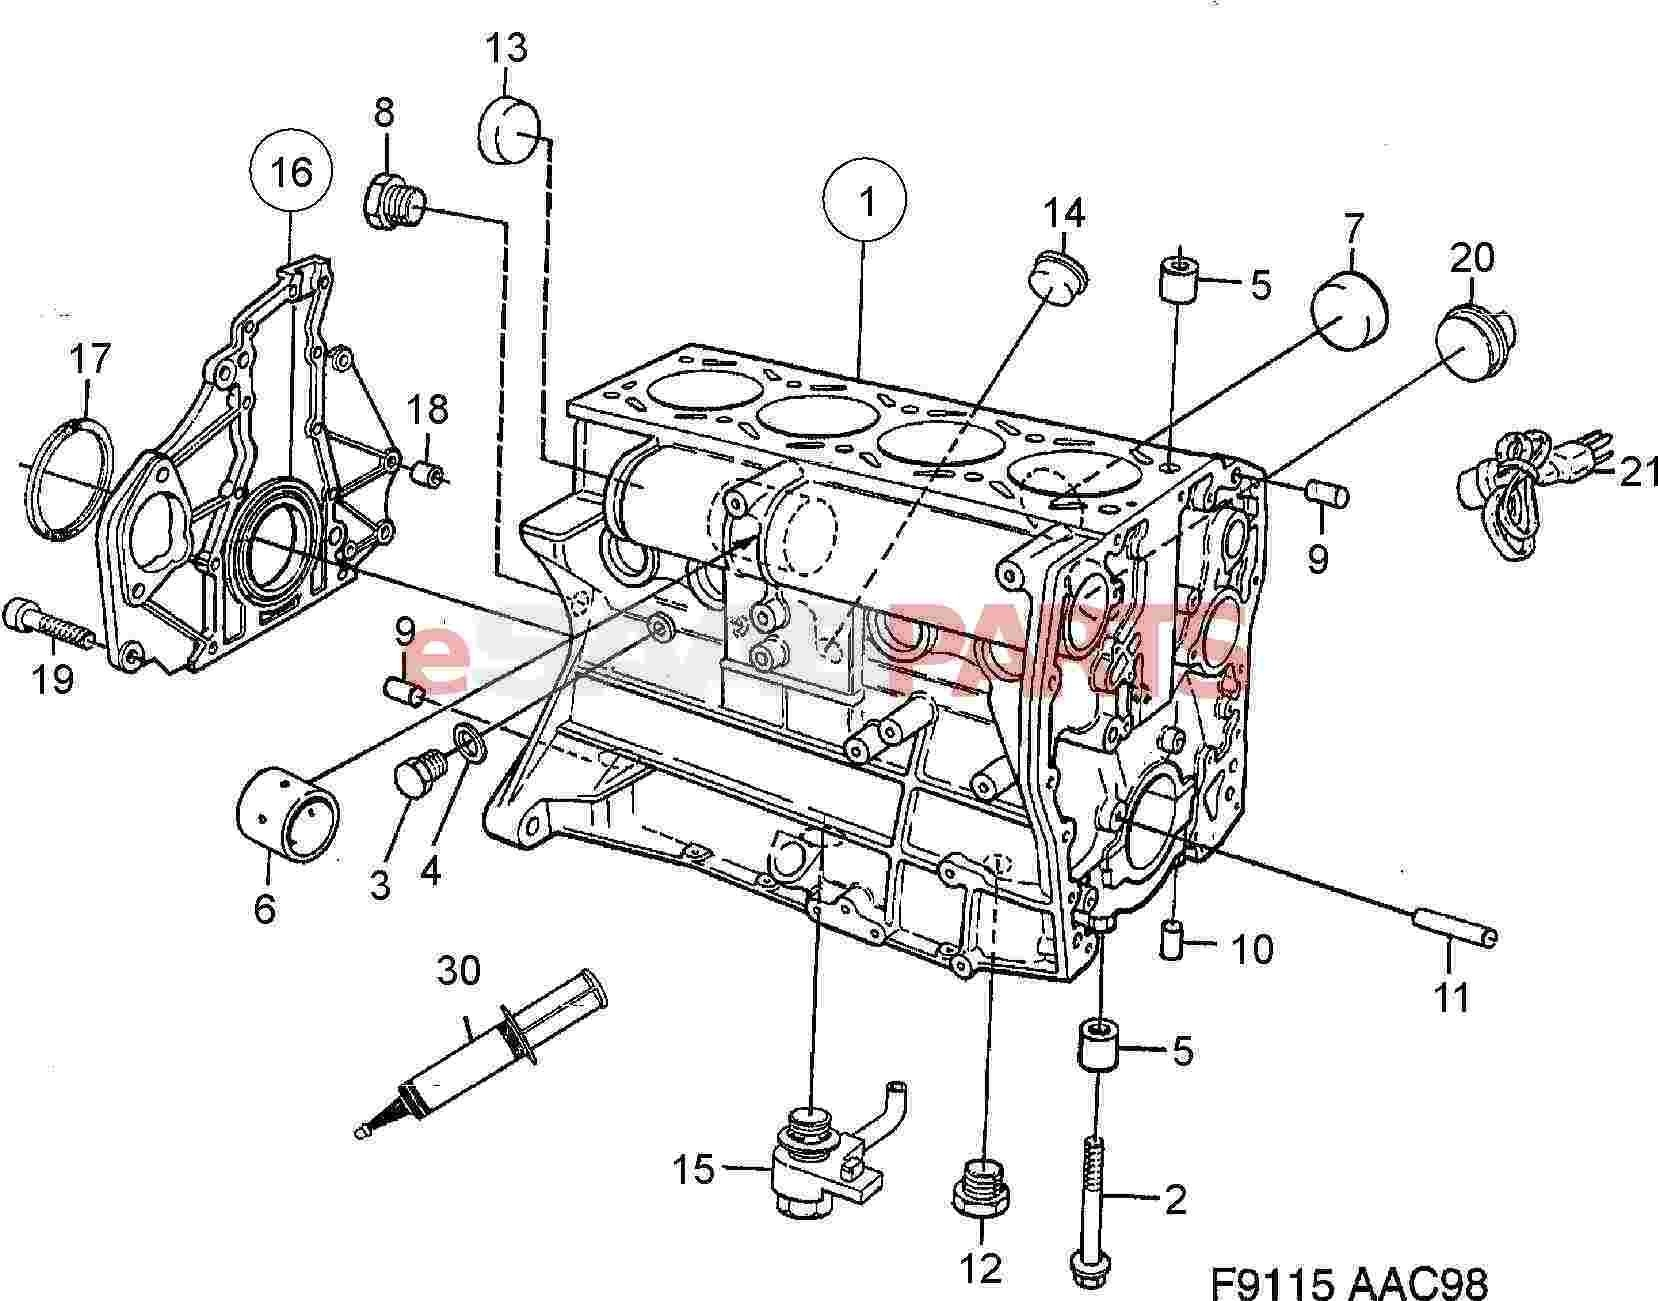 saab 9 3 engine diagram 2000 saab 9 5 fuse box diagram saab wiring      related post